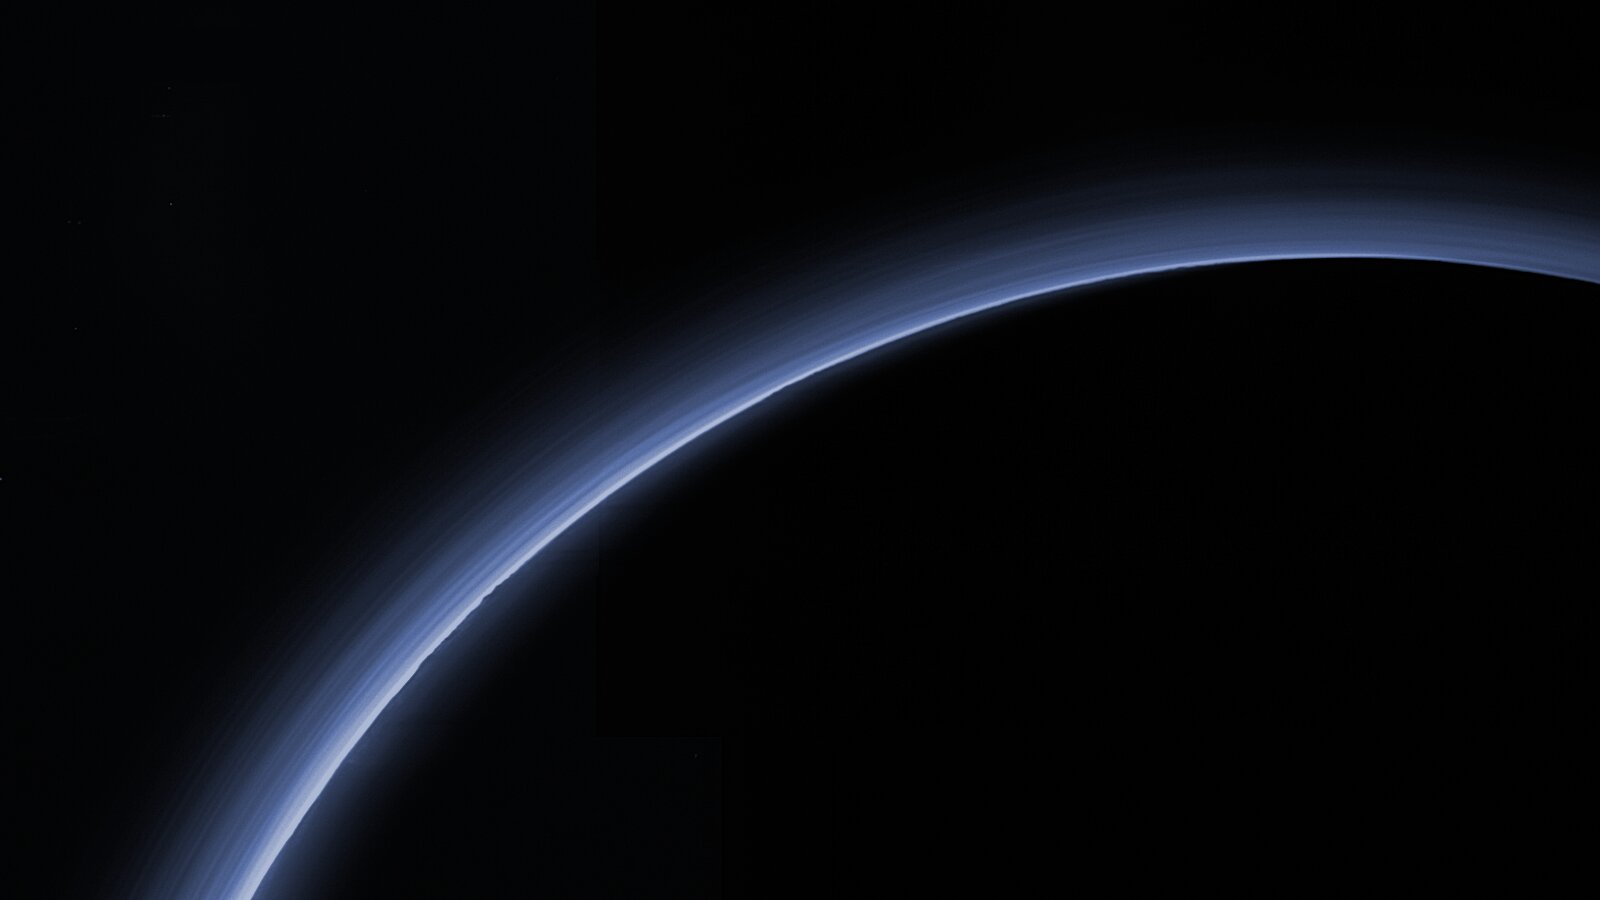 Pluto's atmosphere backlit by the Sun, photographed by New Horizons as it departed the Pluto system. Credit: NASA/JHU-APL/SwRI